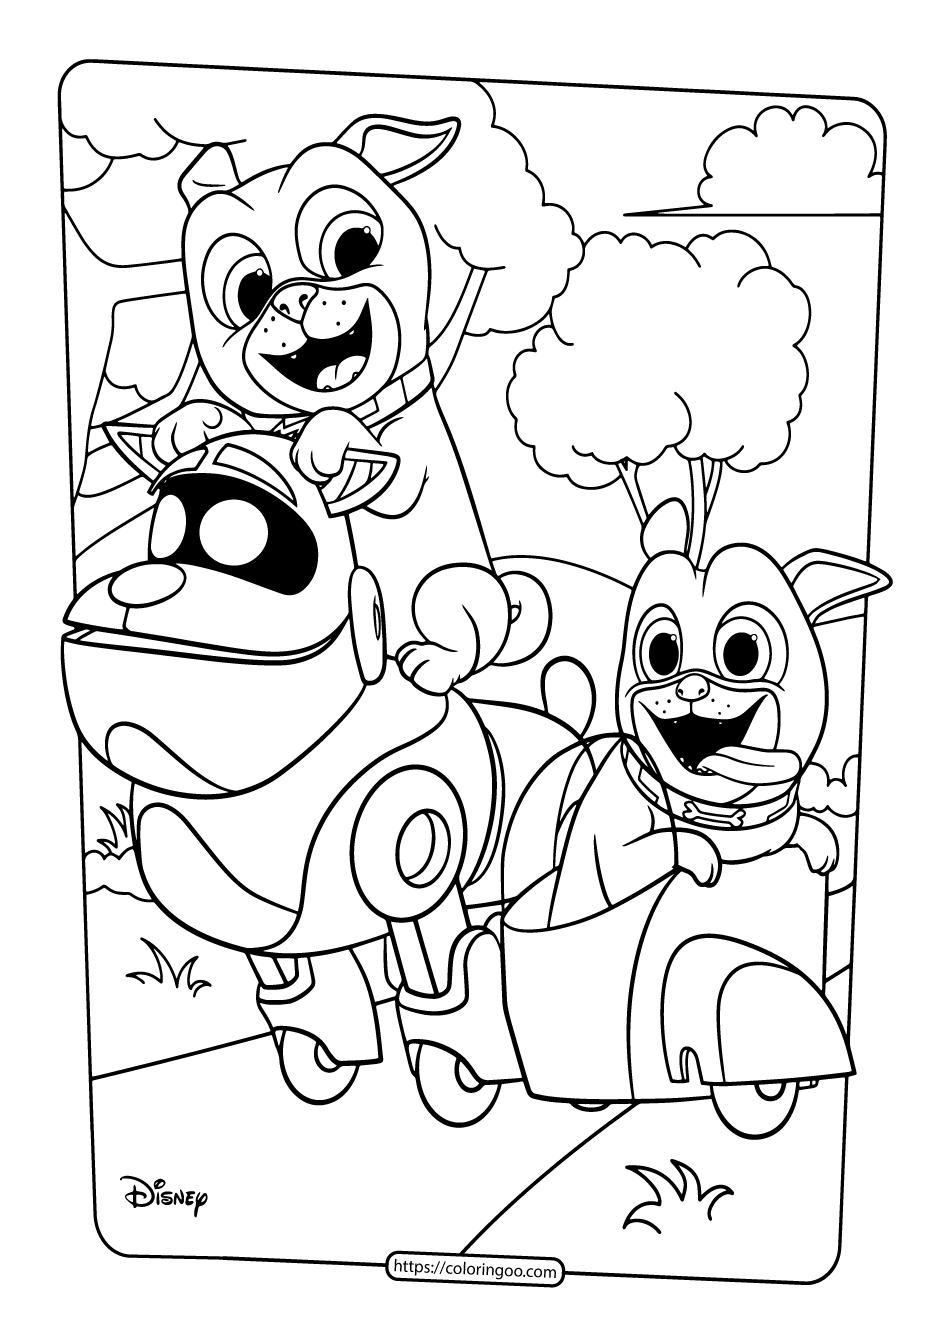 coloring pages of dogs printable coloring pages dogs coloring pages free and printable printable coloring dogs of pages